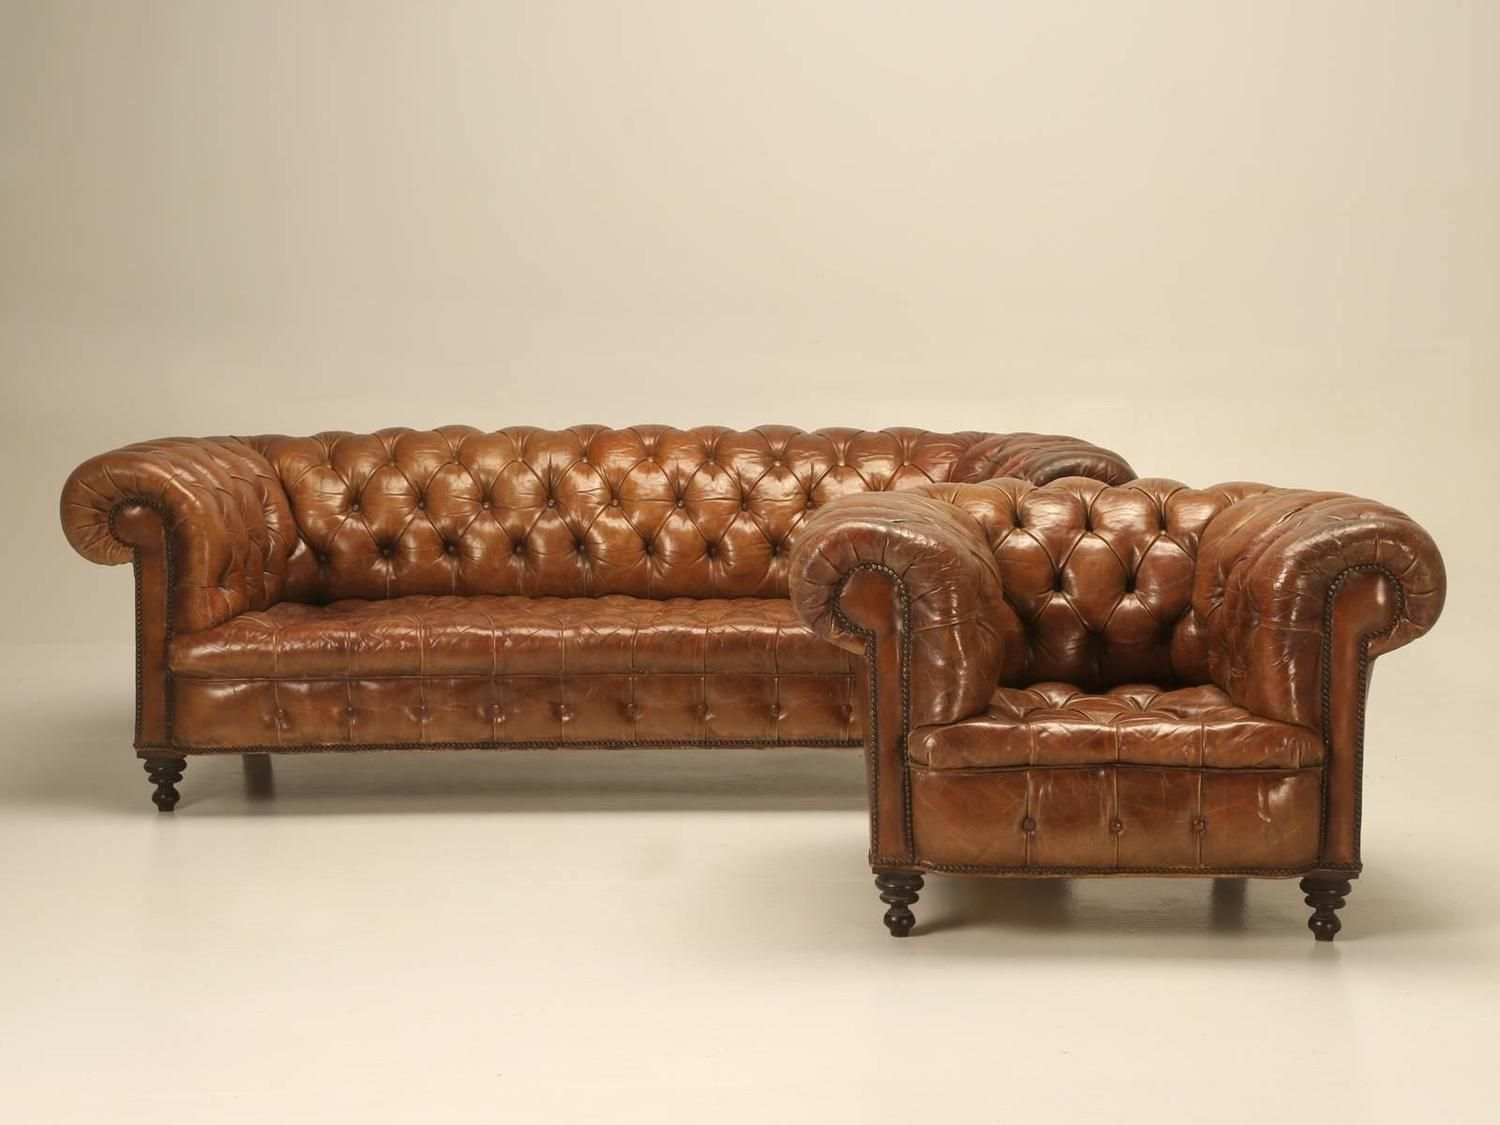 Antique Leather Chesterfield Sofa In Original Leather Leather Chesterfield Sofa Leather Chesterfield Victorian Chesterfield Sofa